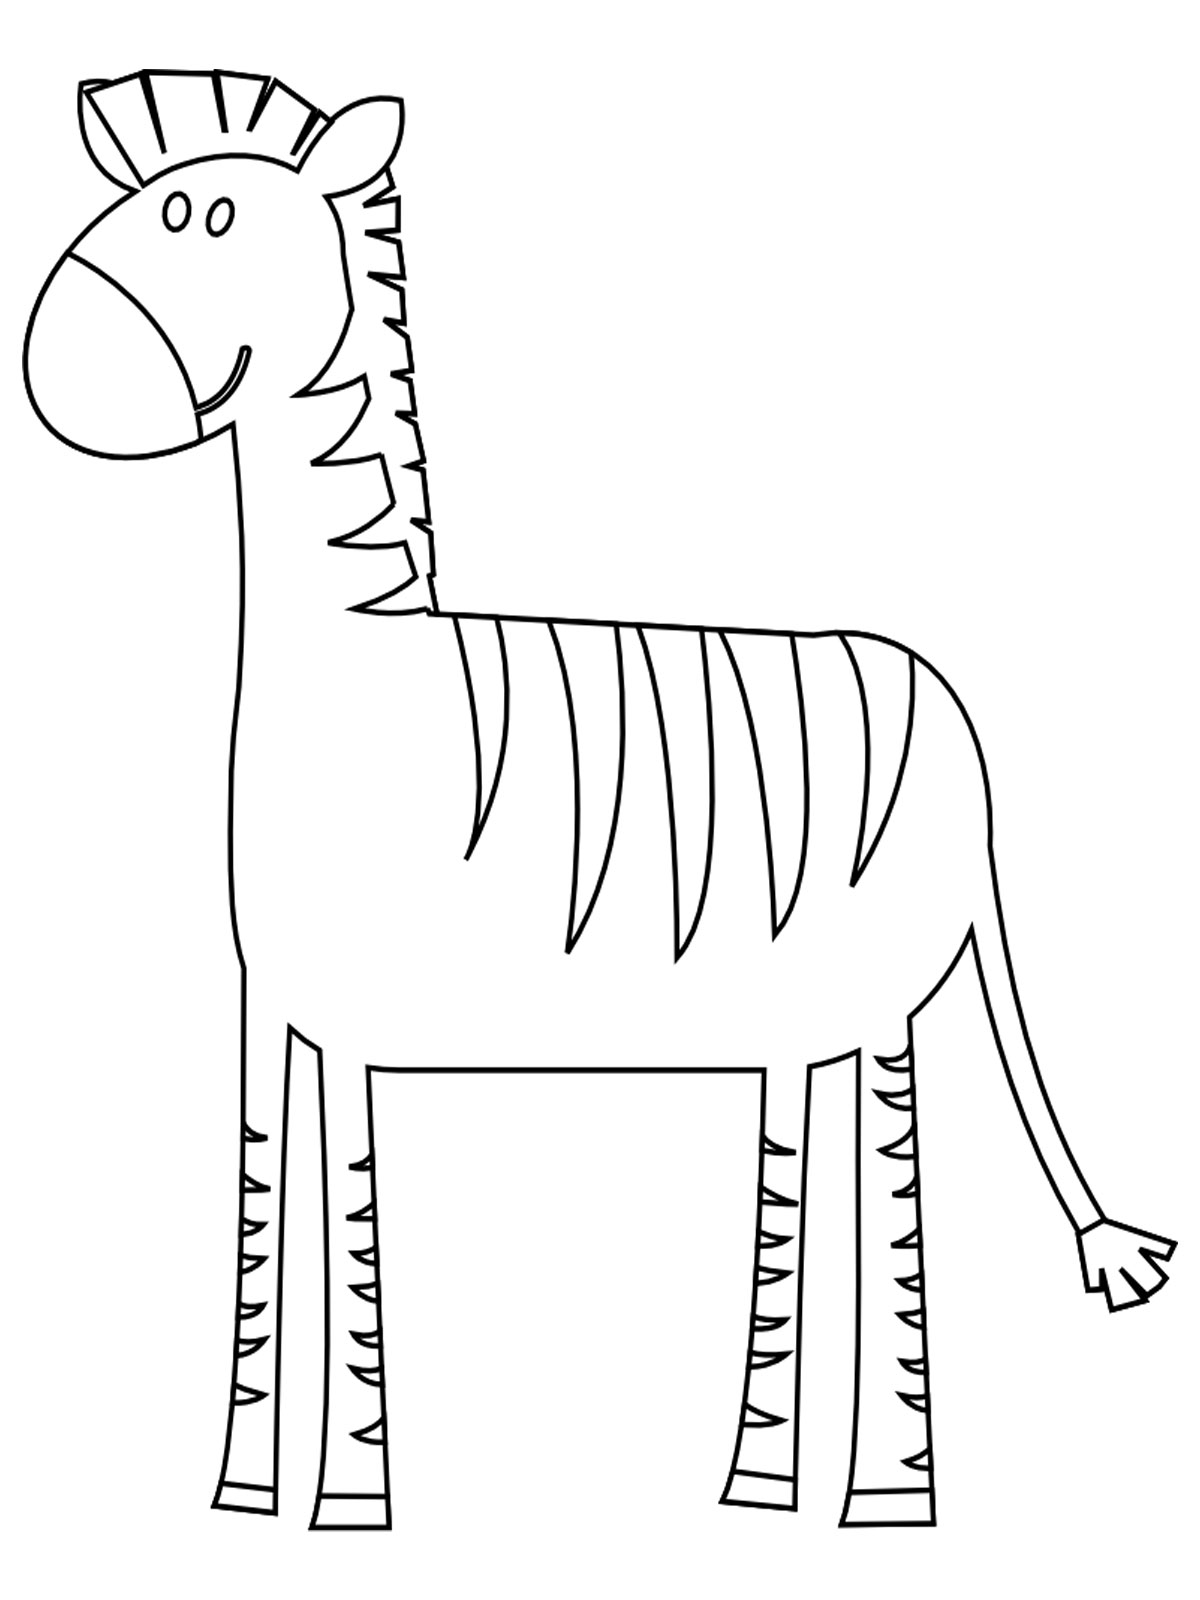 Free coloring pages of zebra stripes - Baby Zebra Coloring Pages Coloring Pages Of Zebra Realistic